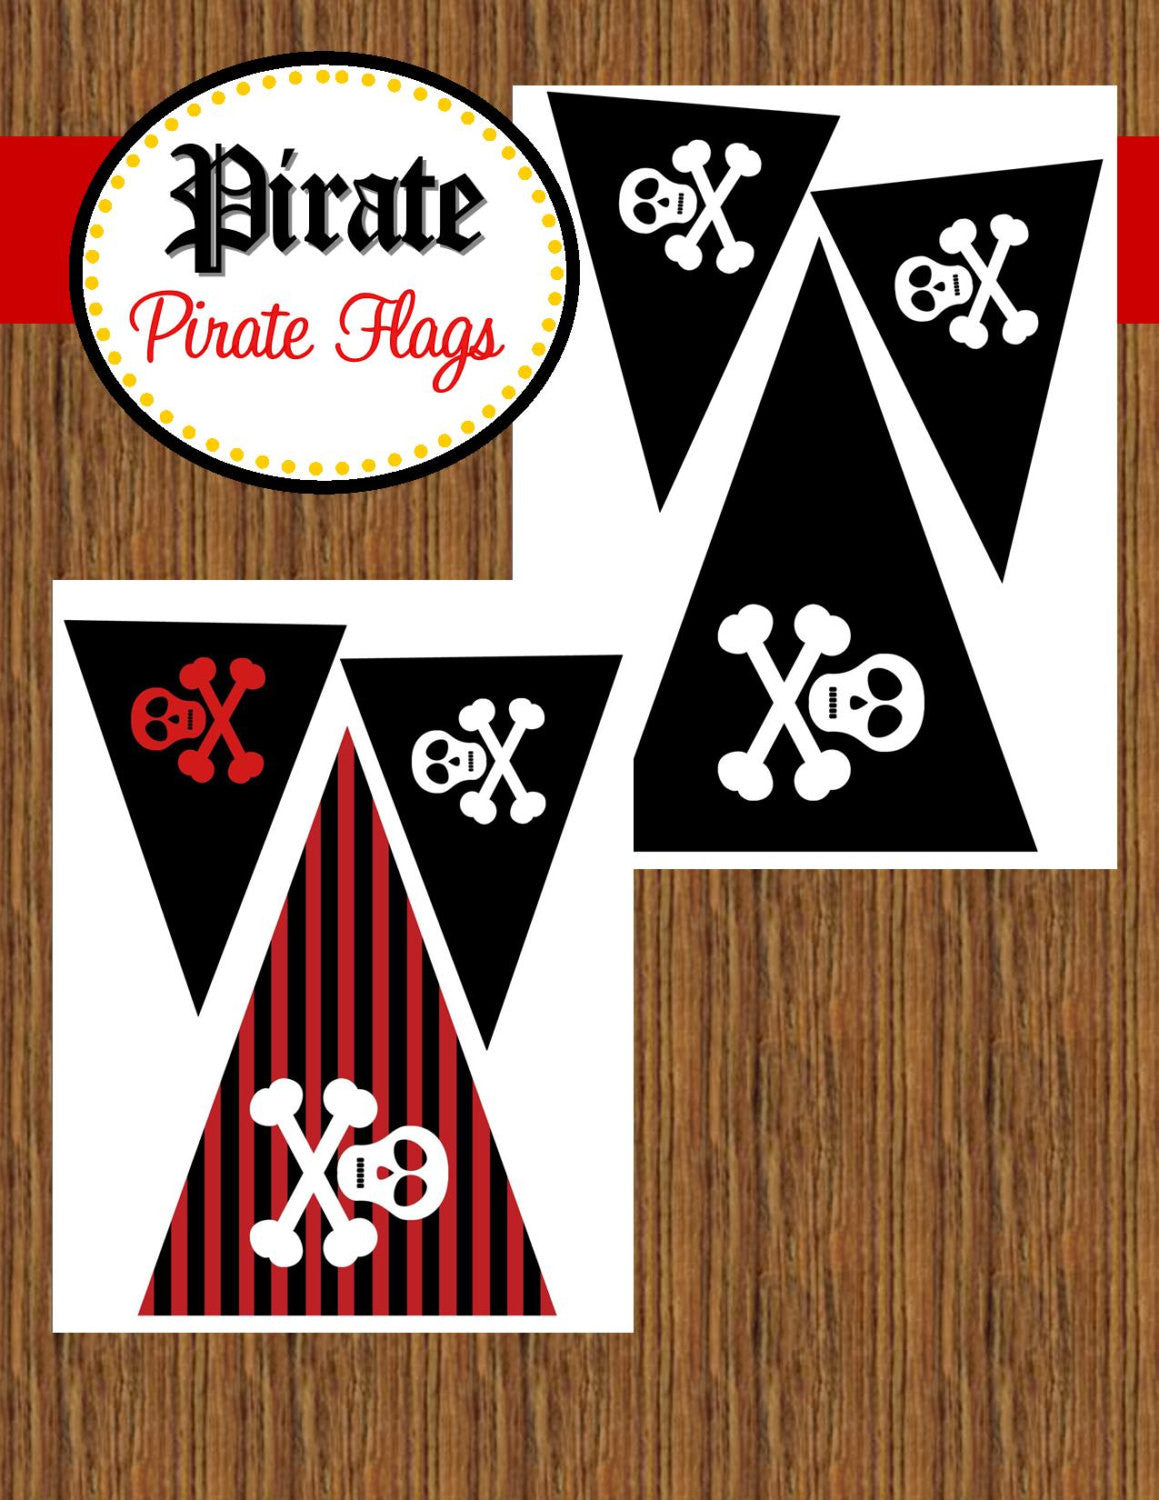 photograph relating to Pirate Flag Printable referred to as PIRATE Birthday Occasion - Pirate Video games - Pirate Bash Online games- Printable Indicators - Boys Birthday Social gathering - Pirate Mail - Lady Pirate Celebration - Pirate Occasion -